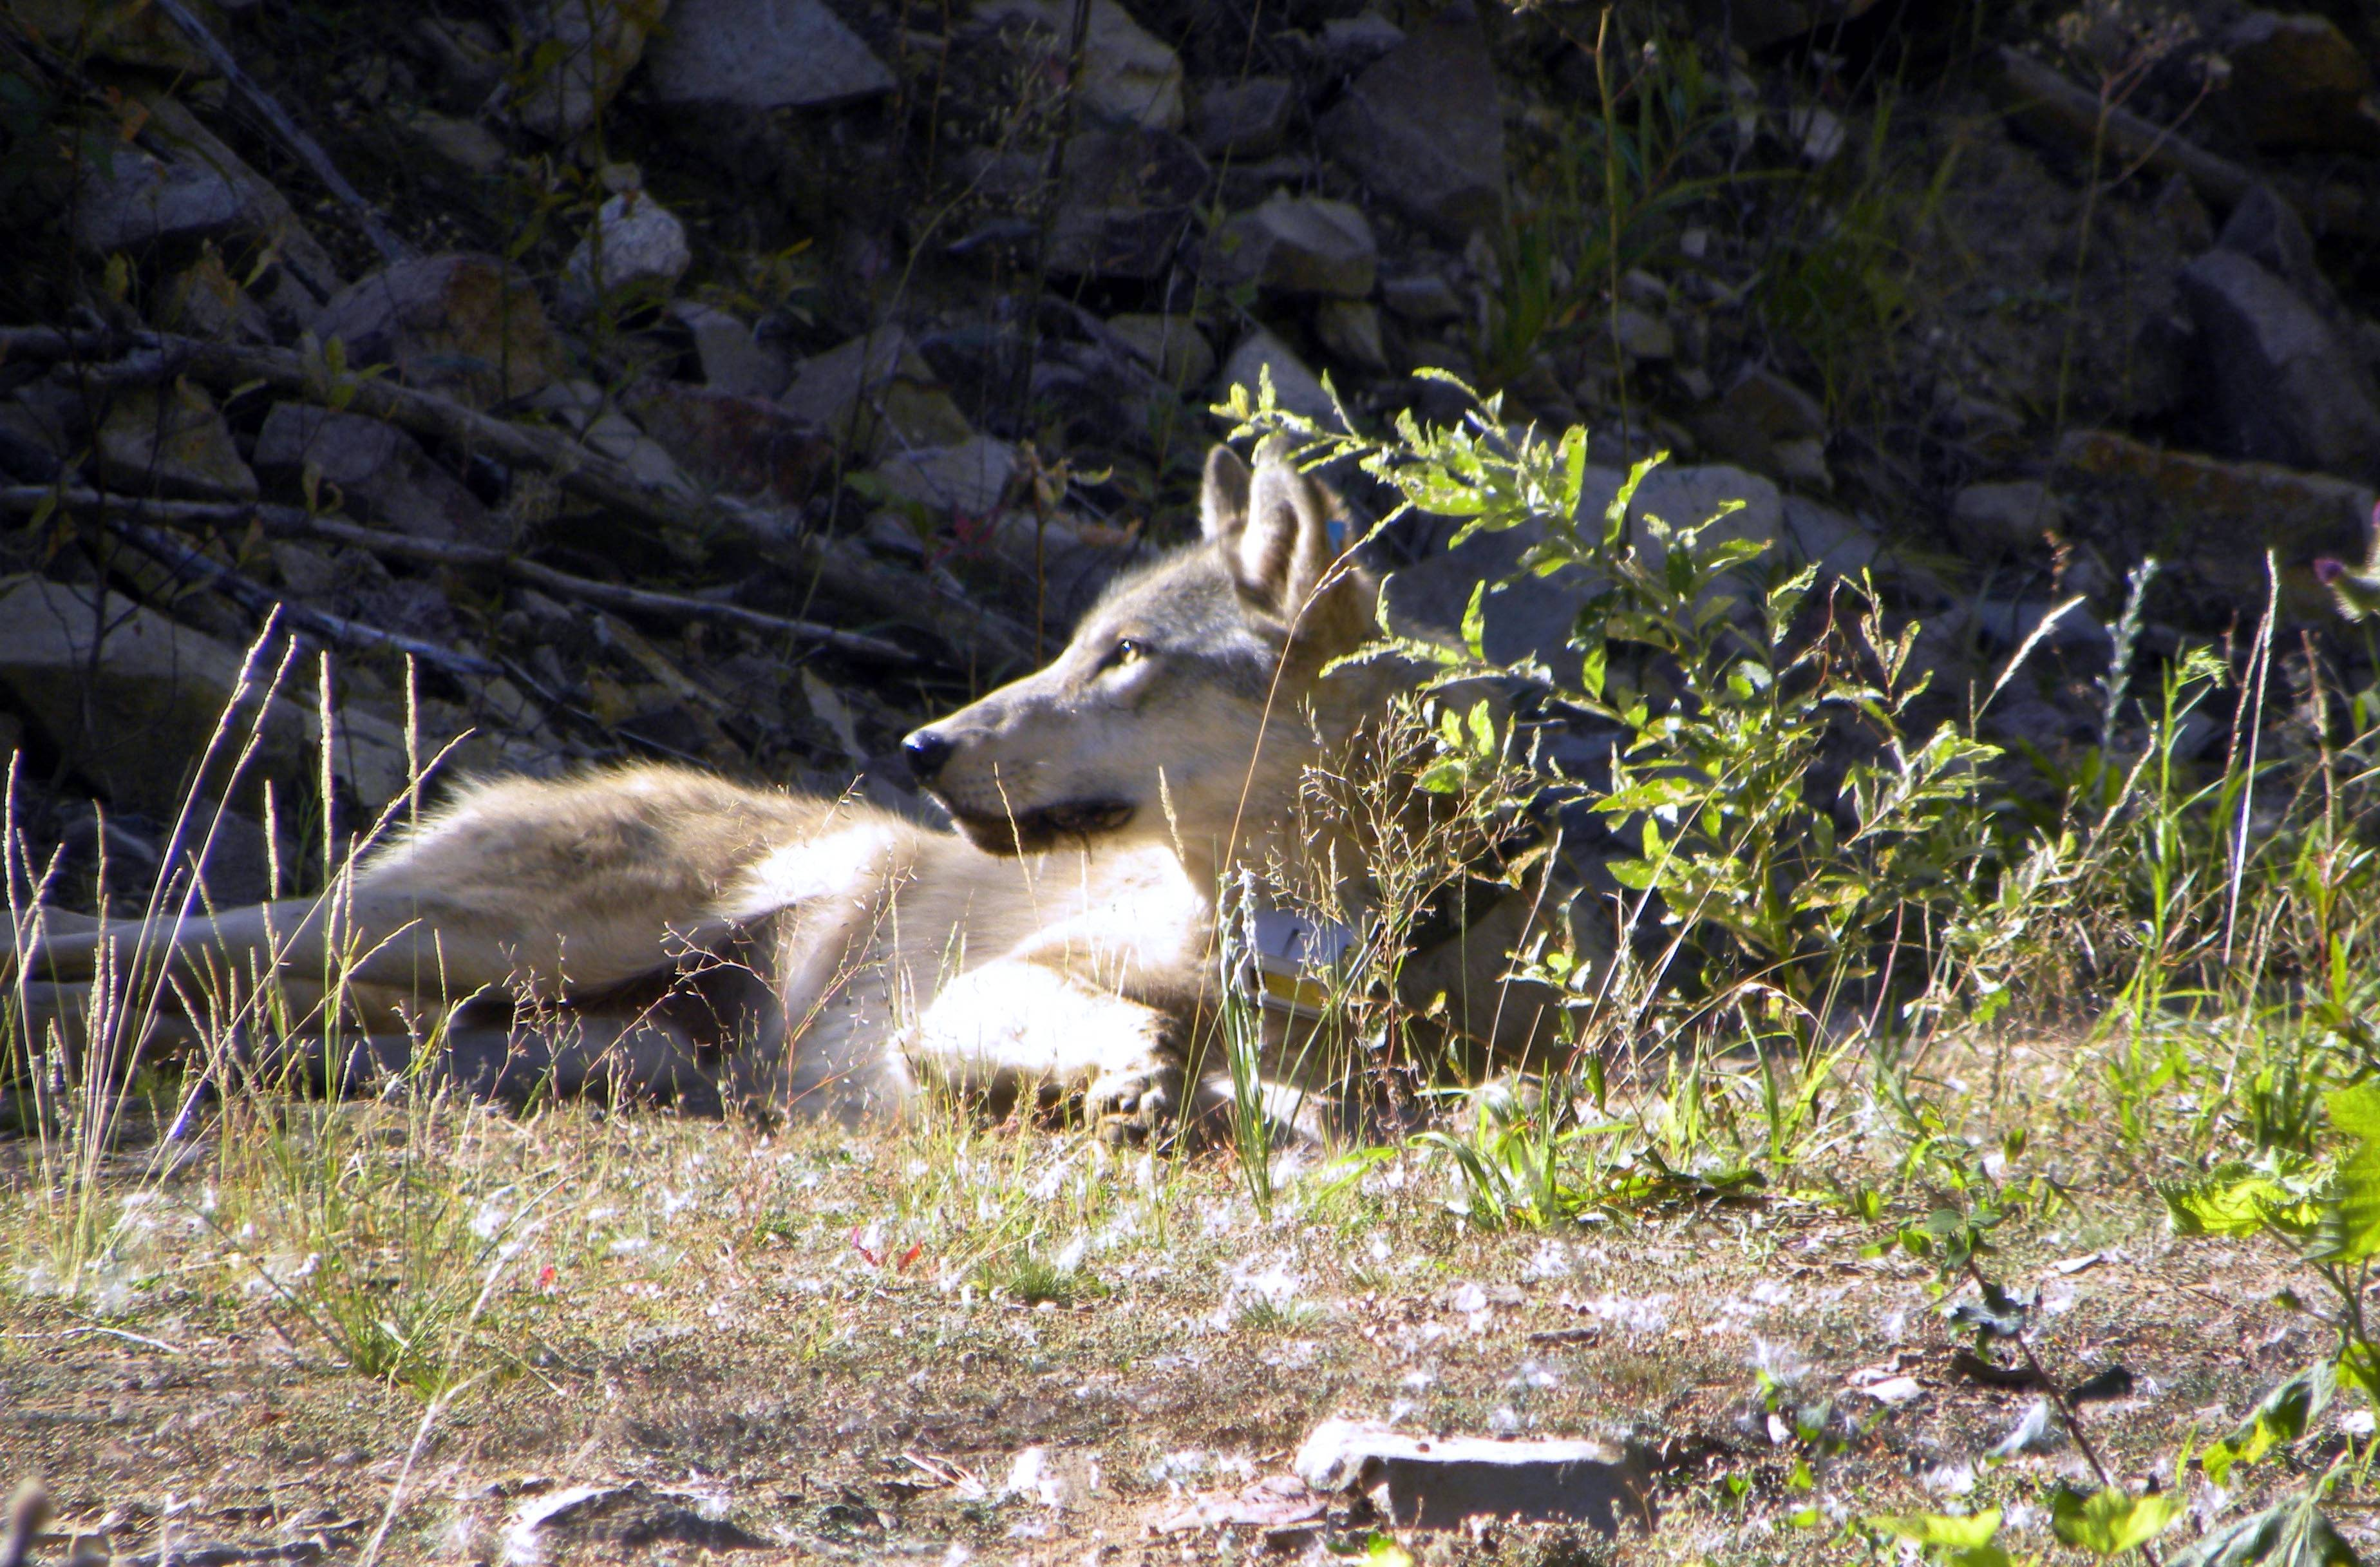 A gray wolf rests on the Colville Indian Reservation near Nespelem, Wash. Two tribal wildlife biologists captured and collared the female wolf. Eight conservation groups recently filed a petition asking the Washington Department of Fish and Wildlife to require livestock producers to exhaust nonlethal measures to prevent wolf depredations before any wolves are killed.